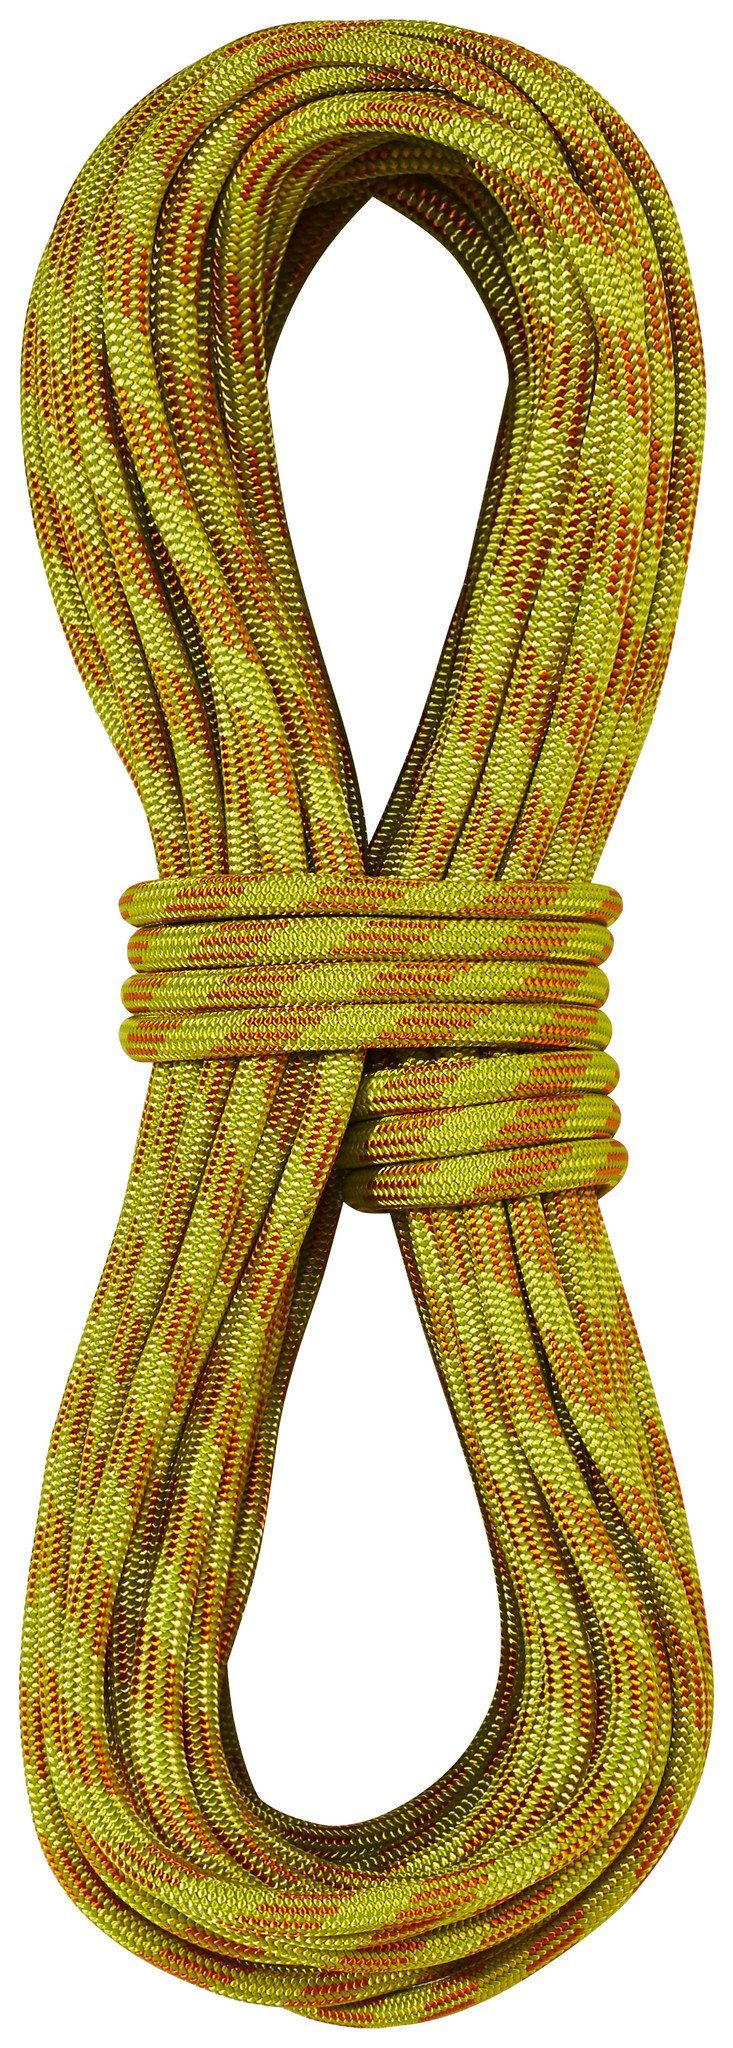 Edelrid Kletterseil »Confidence Rope 8,0mm 20m«